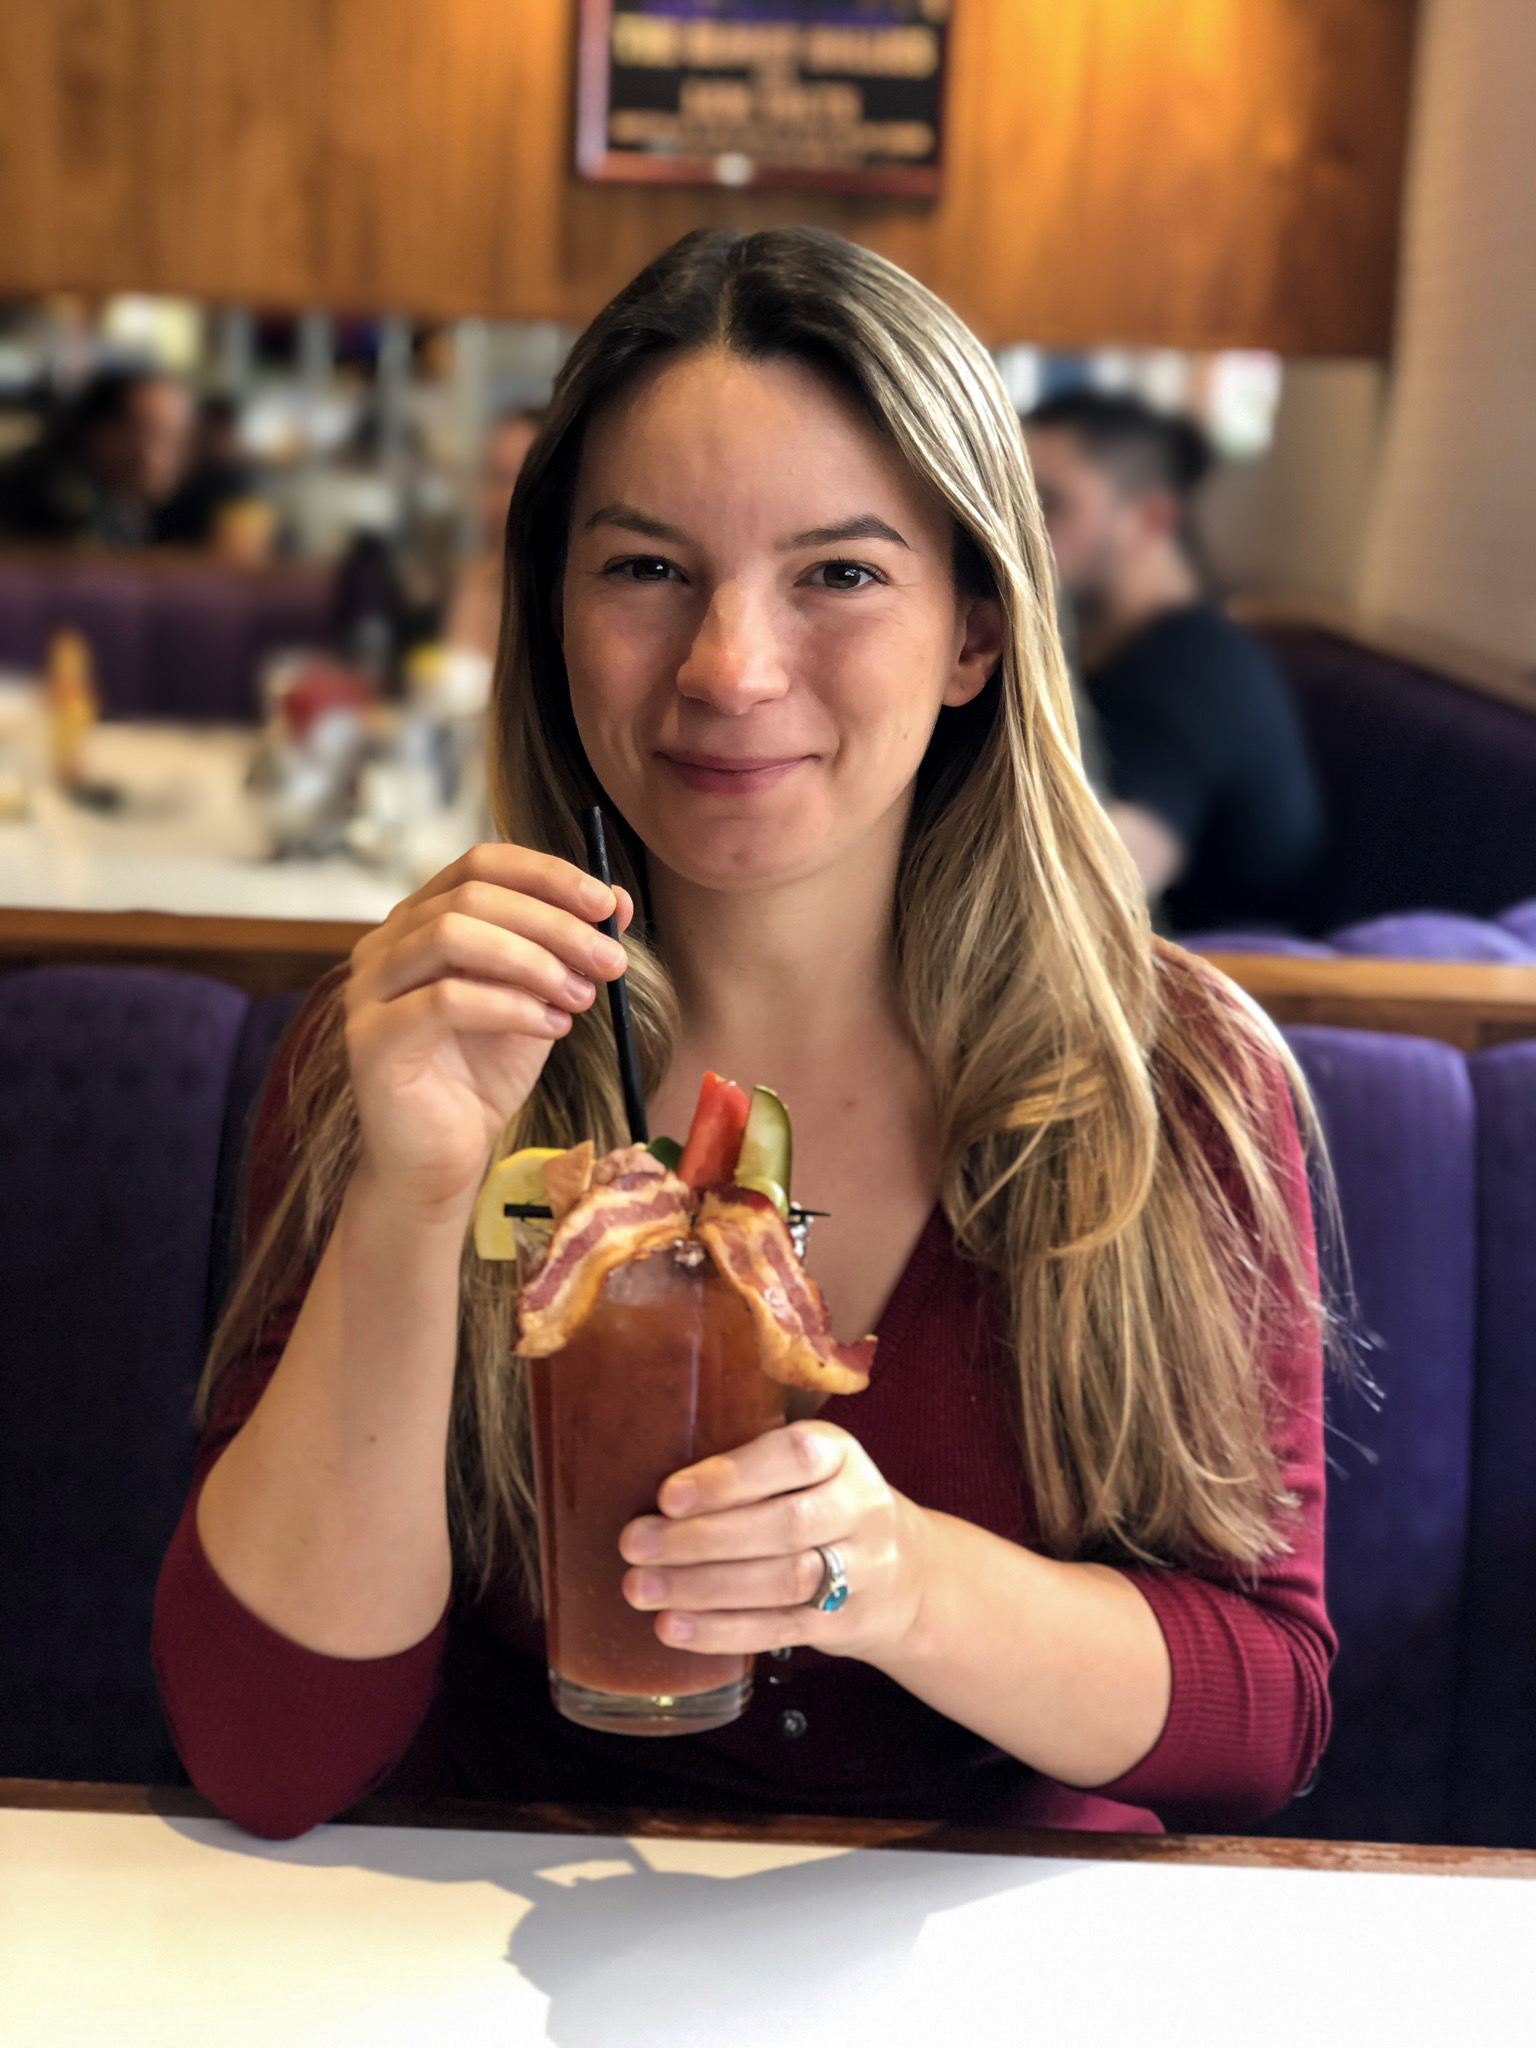 mary janes diner hard rock hotel downtown san diego bloody mary obsessed value brunch.jpg